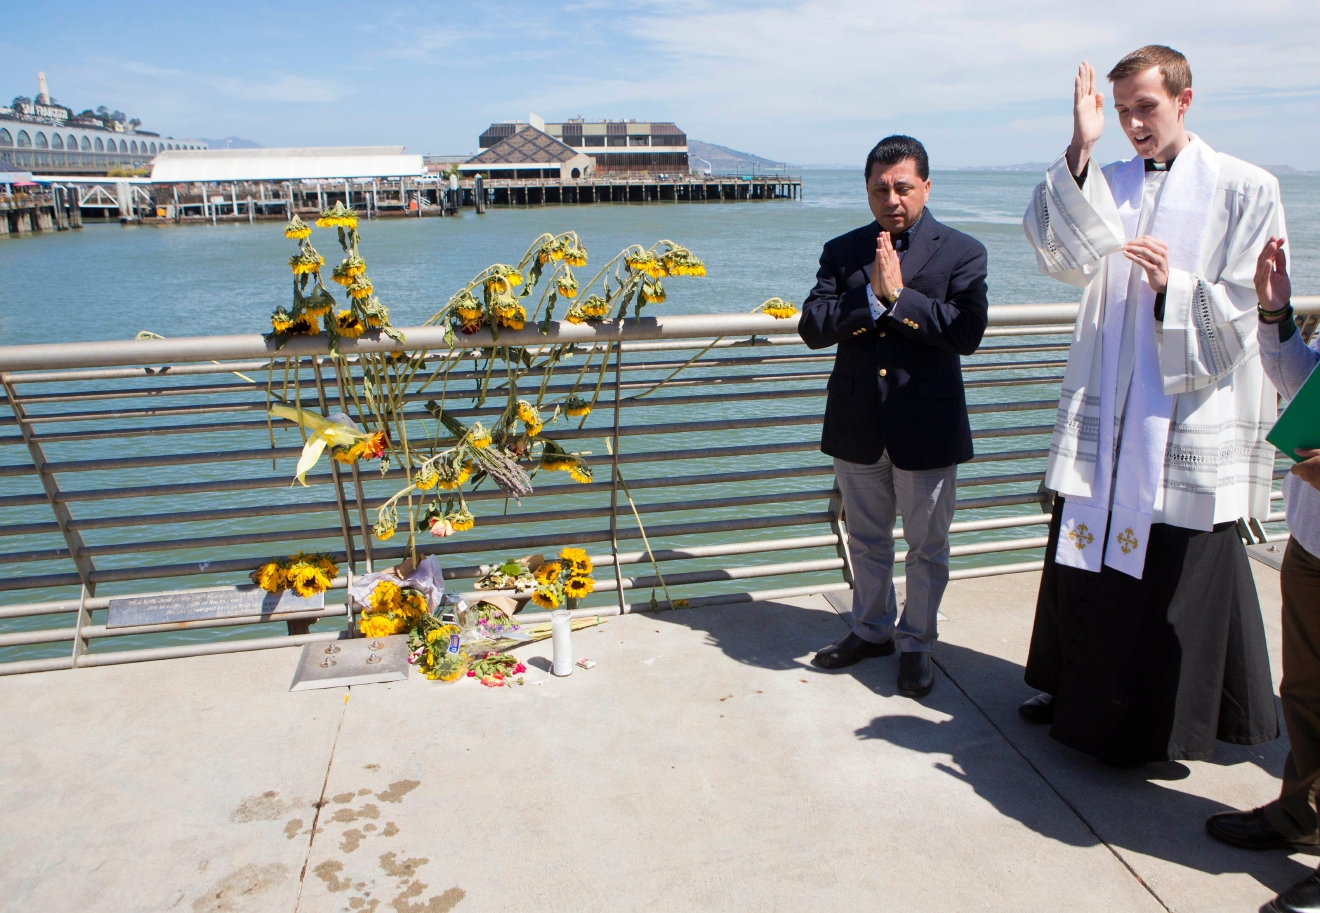 FILE - In this July 6, 2015 file photo, Father Cameron Faller, right, and Julio Escobar, of Restorative Justice Ministry, conduct a vigil for Kathryn Steinle on Pier 14 in San Francisco. (AP Photo/Beck Diefenbach, File)<p></p>